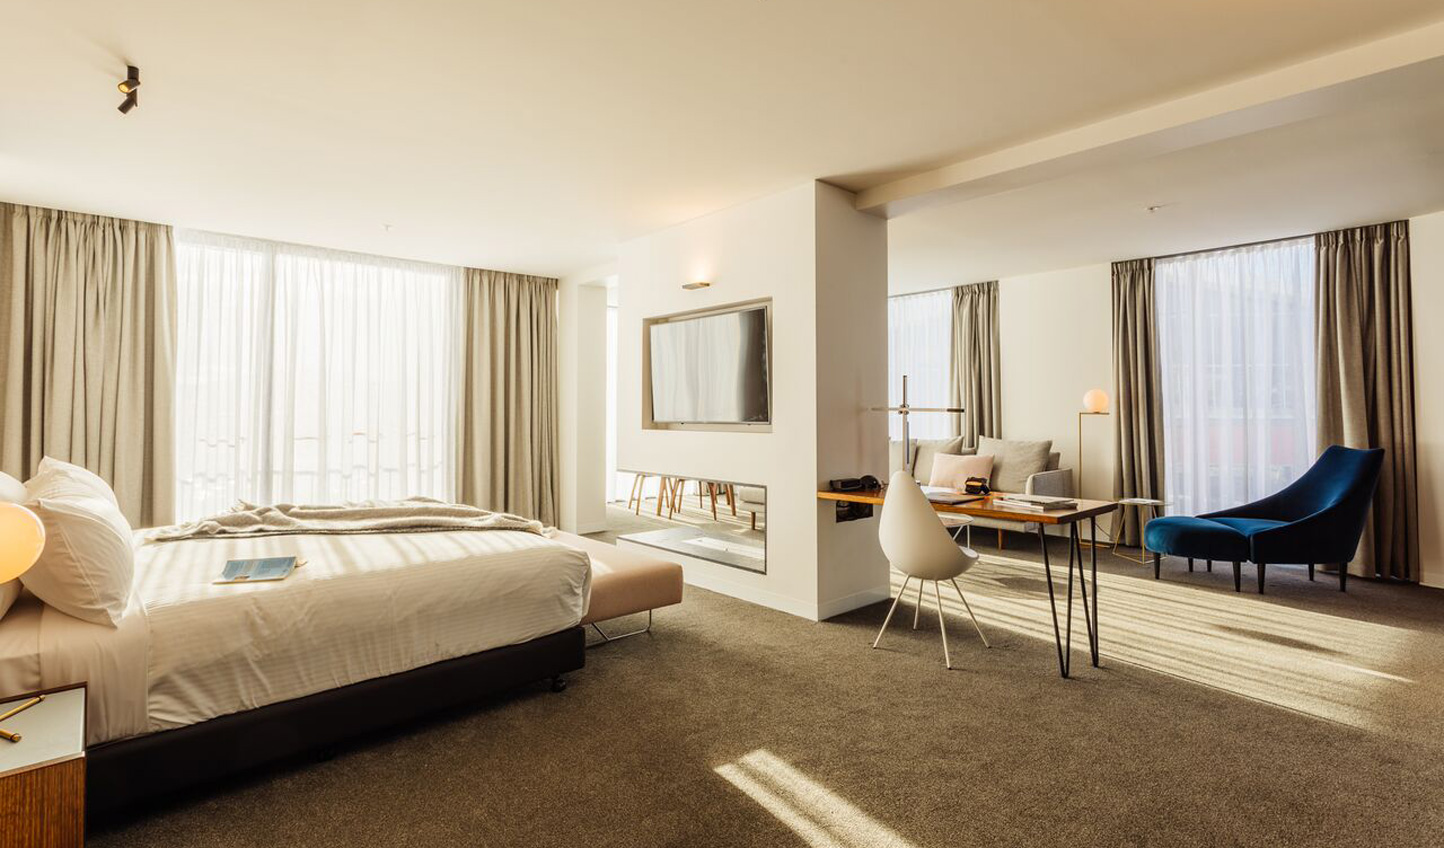 Minimalist design makes for a luxurious stay